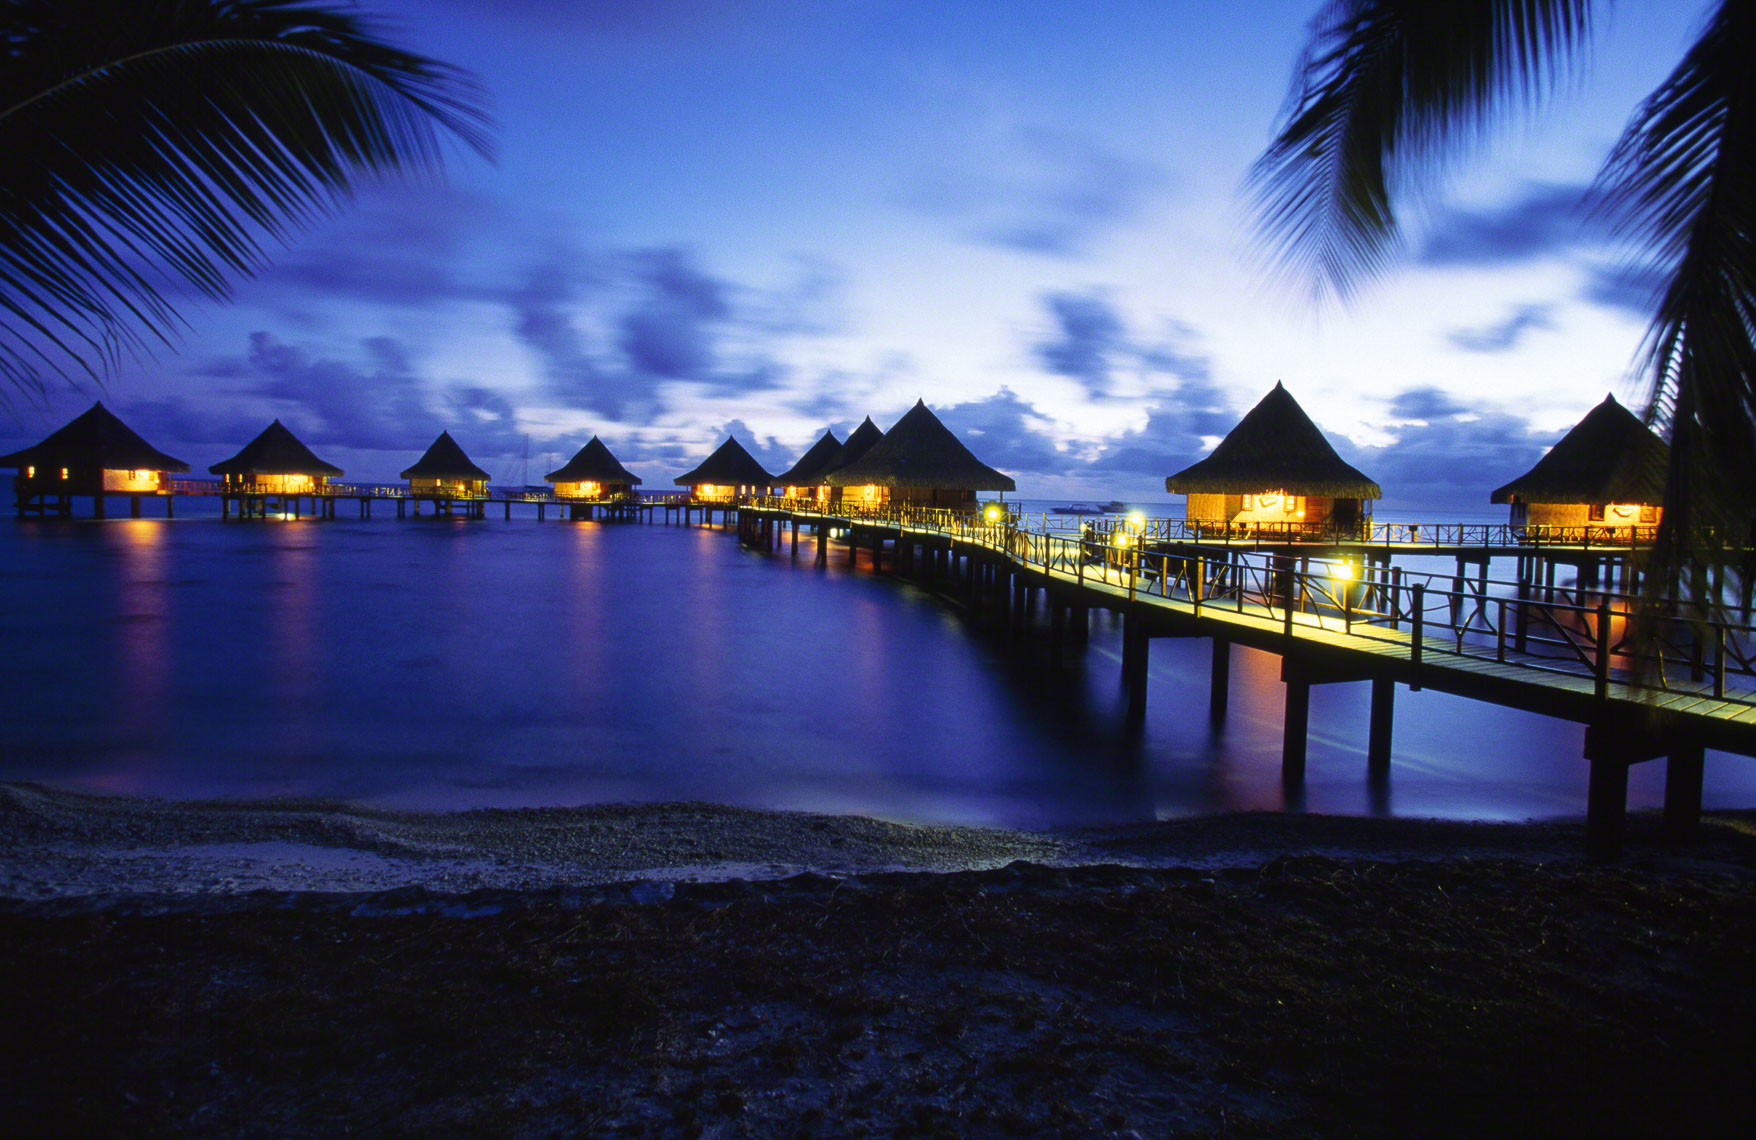 Over the water bungalows of the Kai Ora resort at dusk